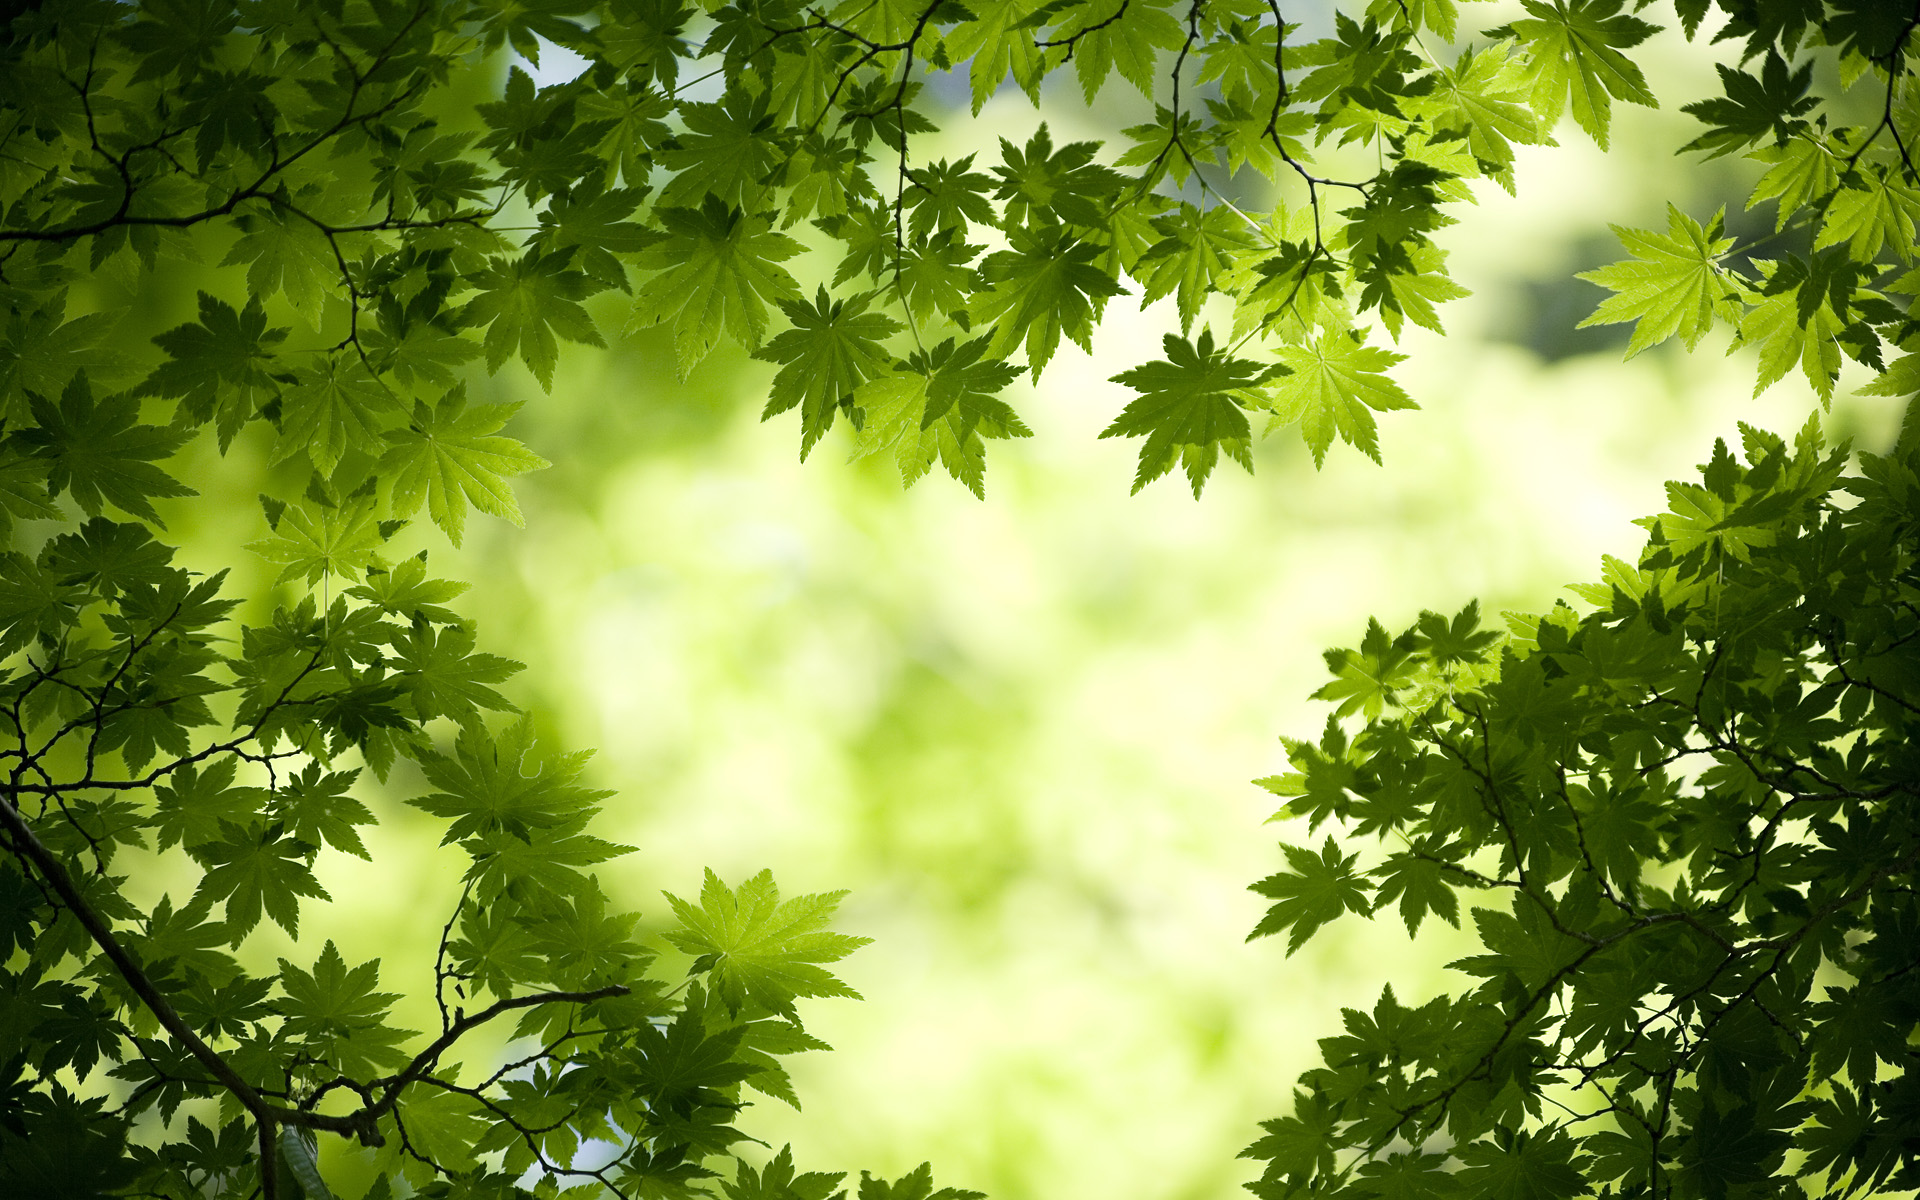 Green Maple Leaves Wallpapers HD Wallpapers 1920x1200